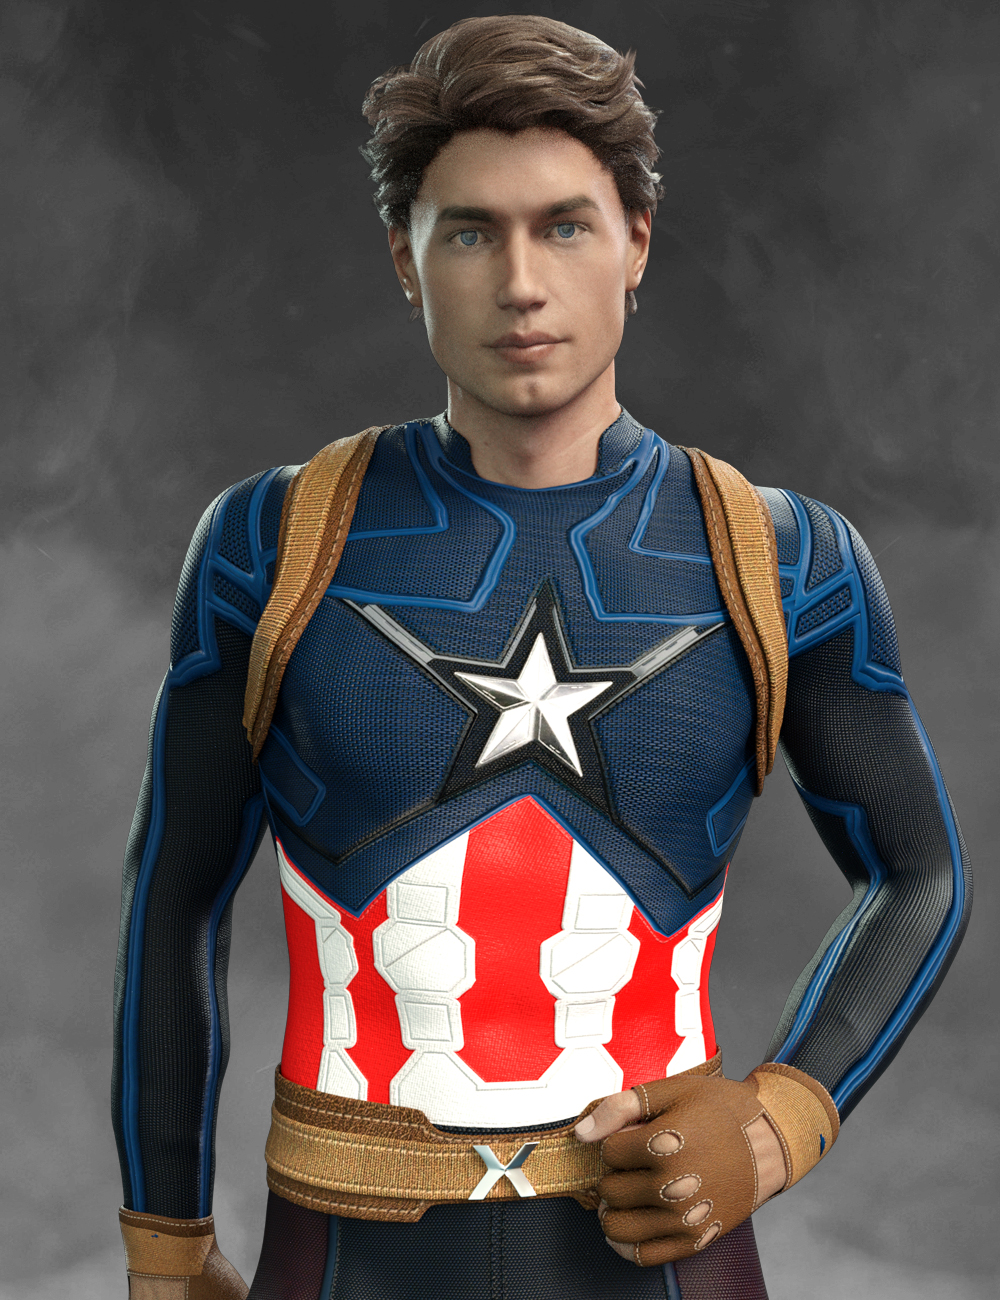 X-Fashion America Outfit for Genesis 8 Male(s) by: Mely3Dxtrart-3d, 3D Models by Daz 3D